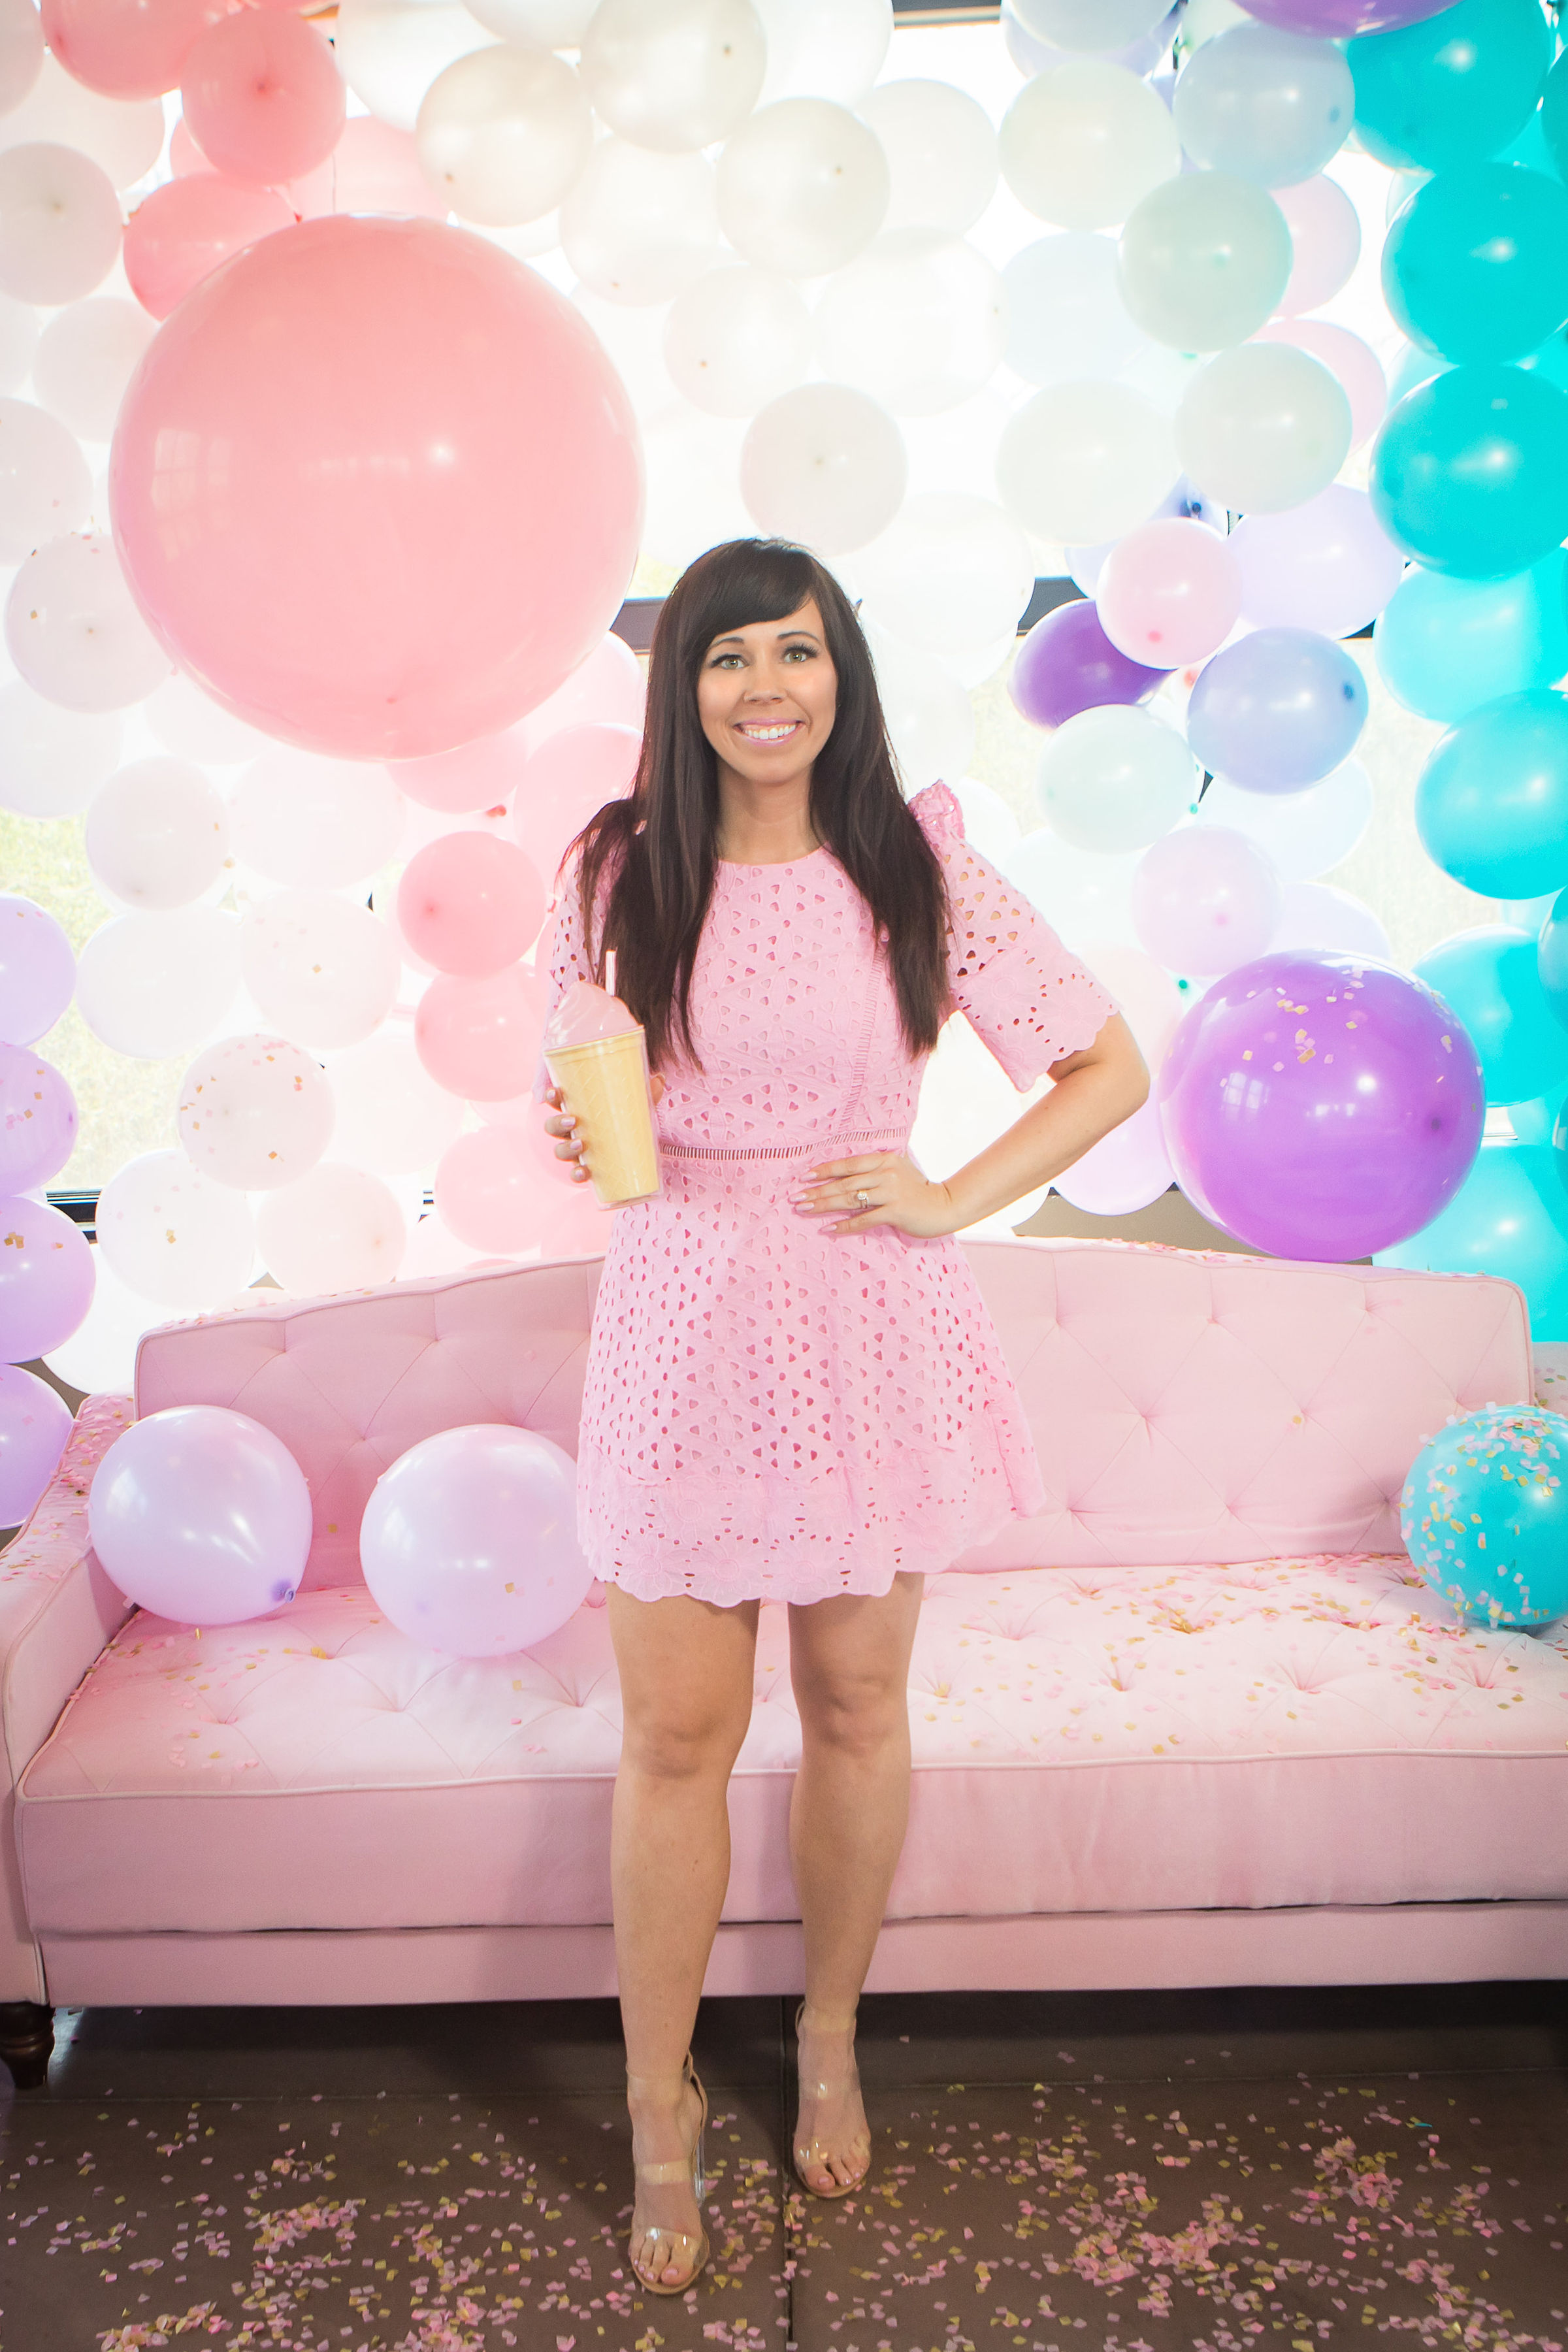 She's Been Scooped Up Bridal Shower with a DIY Balloon Wall